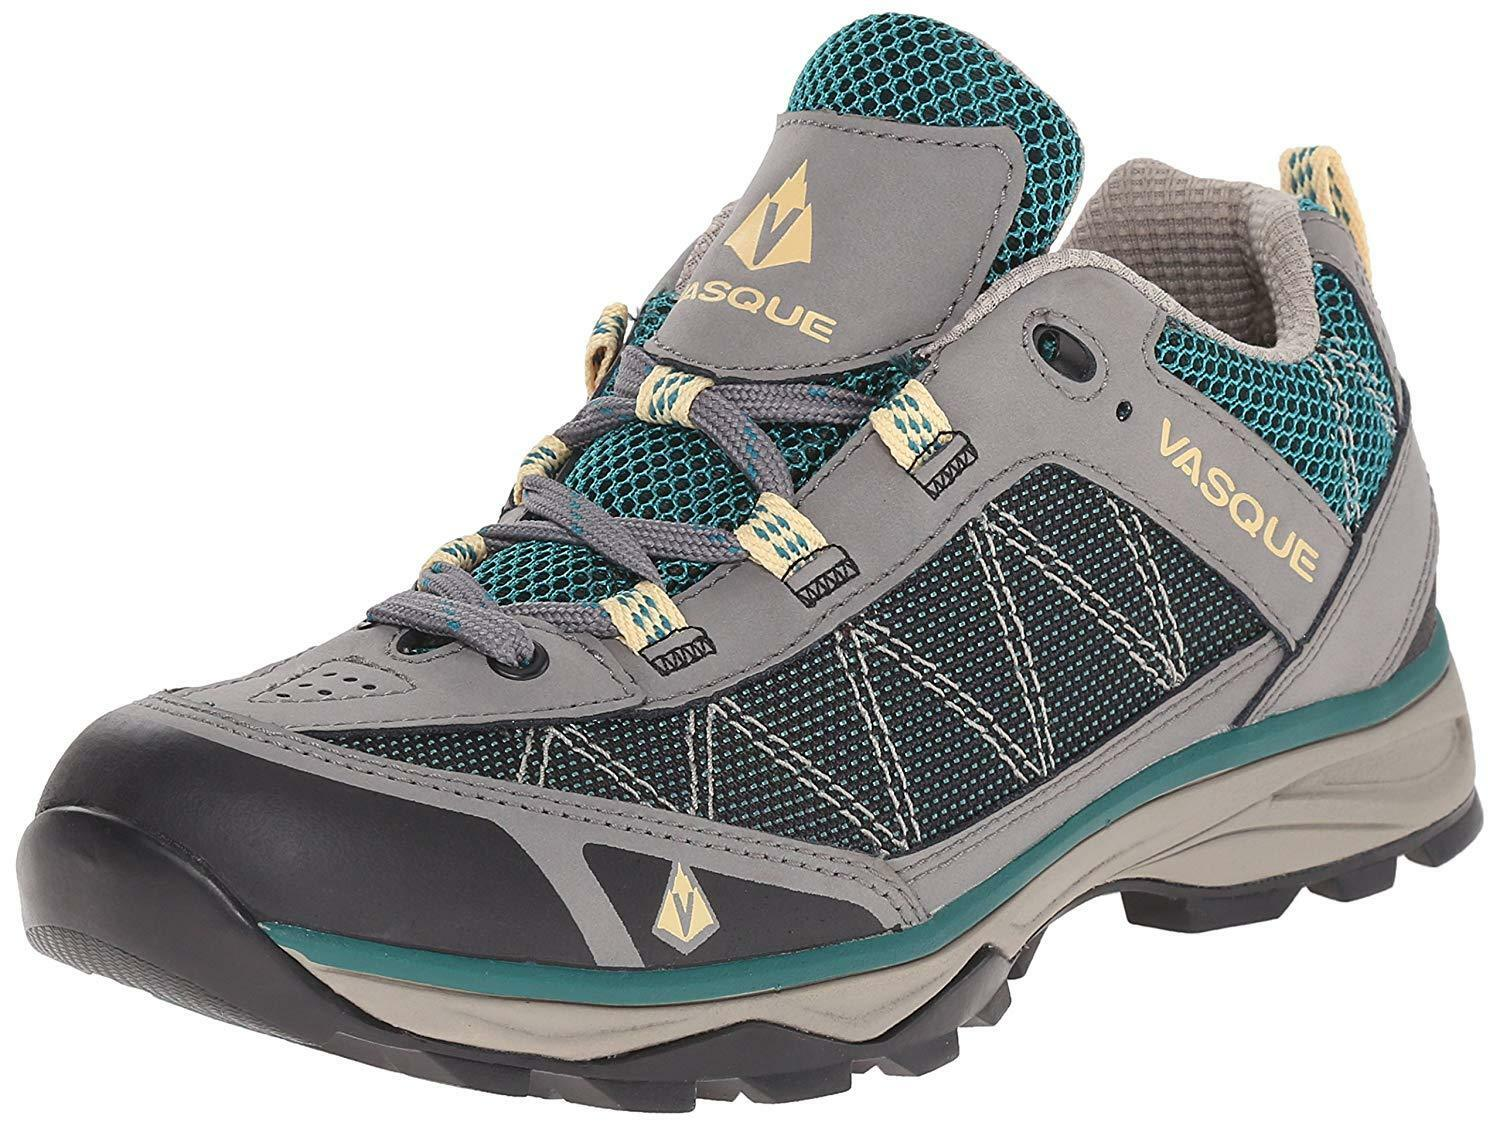 50%  OFF  NEW WMN'S VASQUE MONOLITH LOW HIKING BOOT, US 8, EVERGLADE.